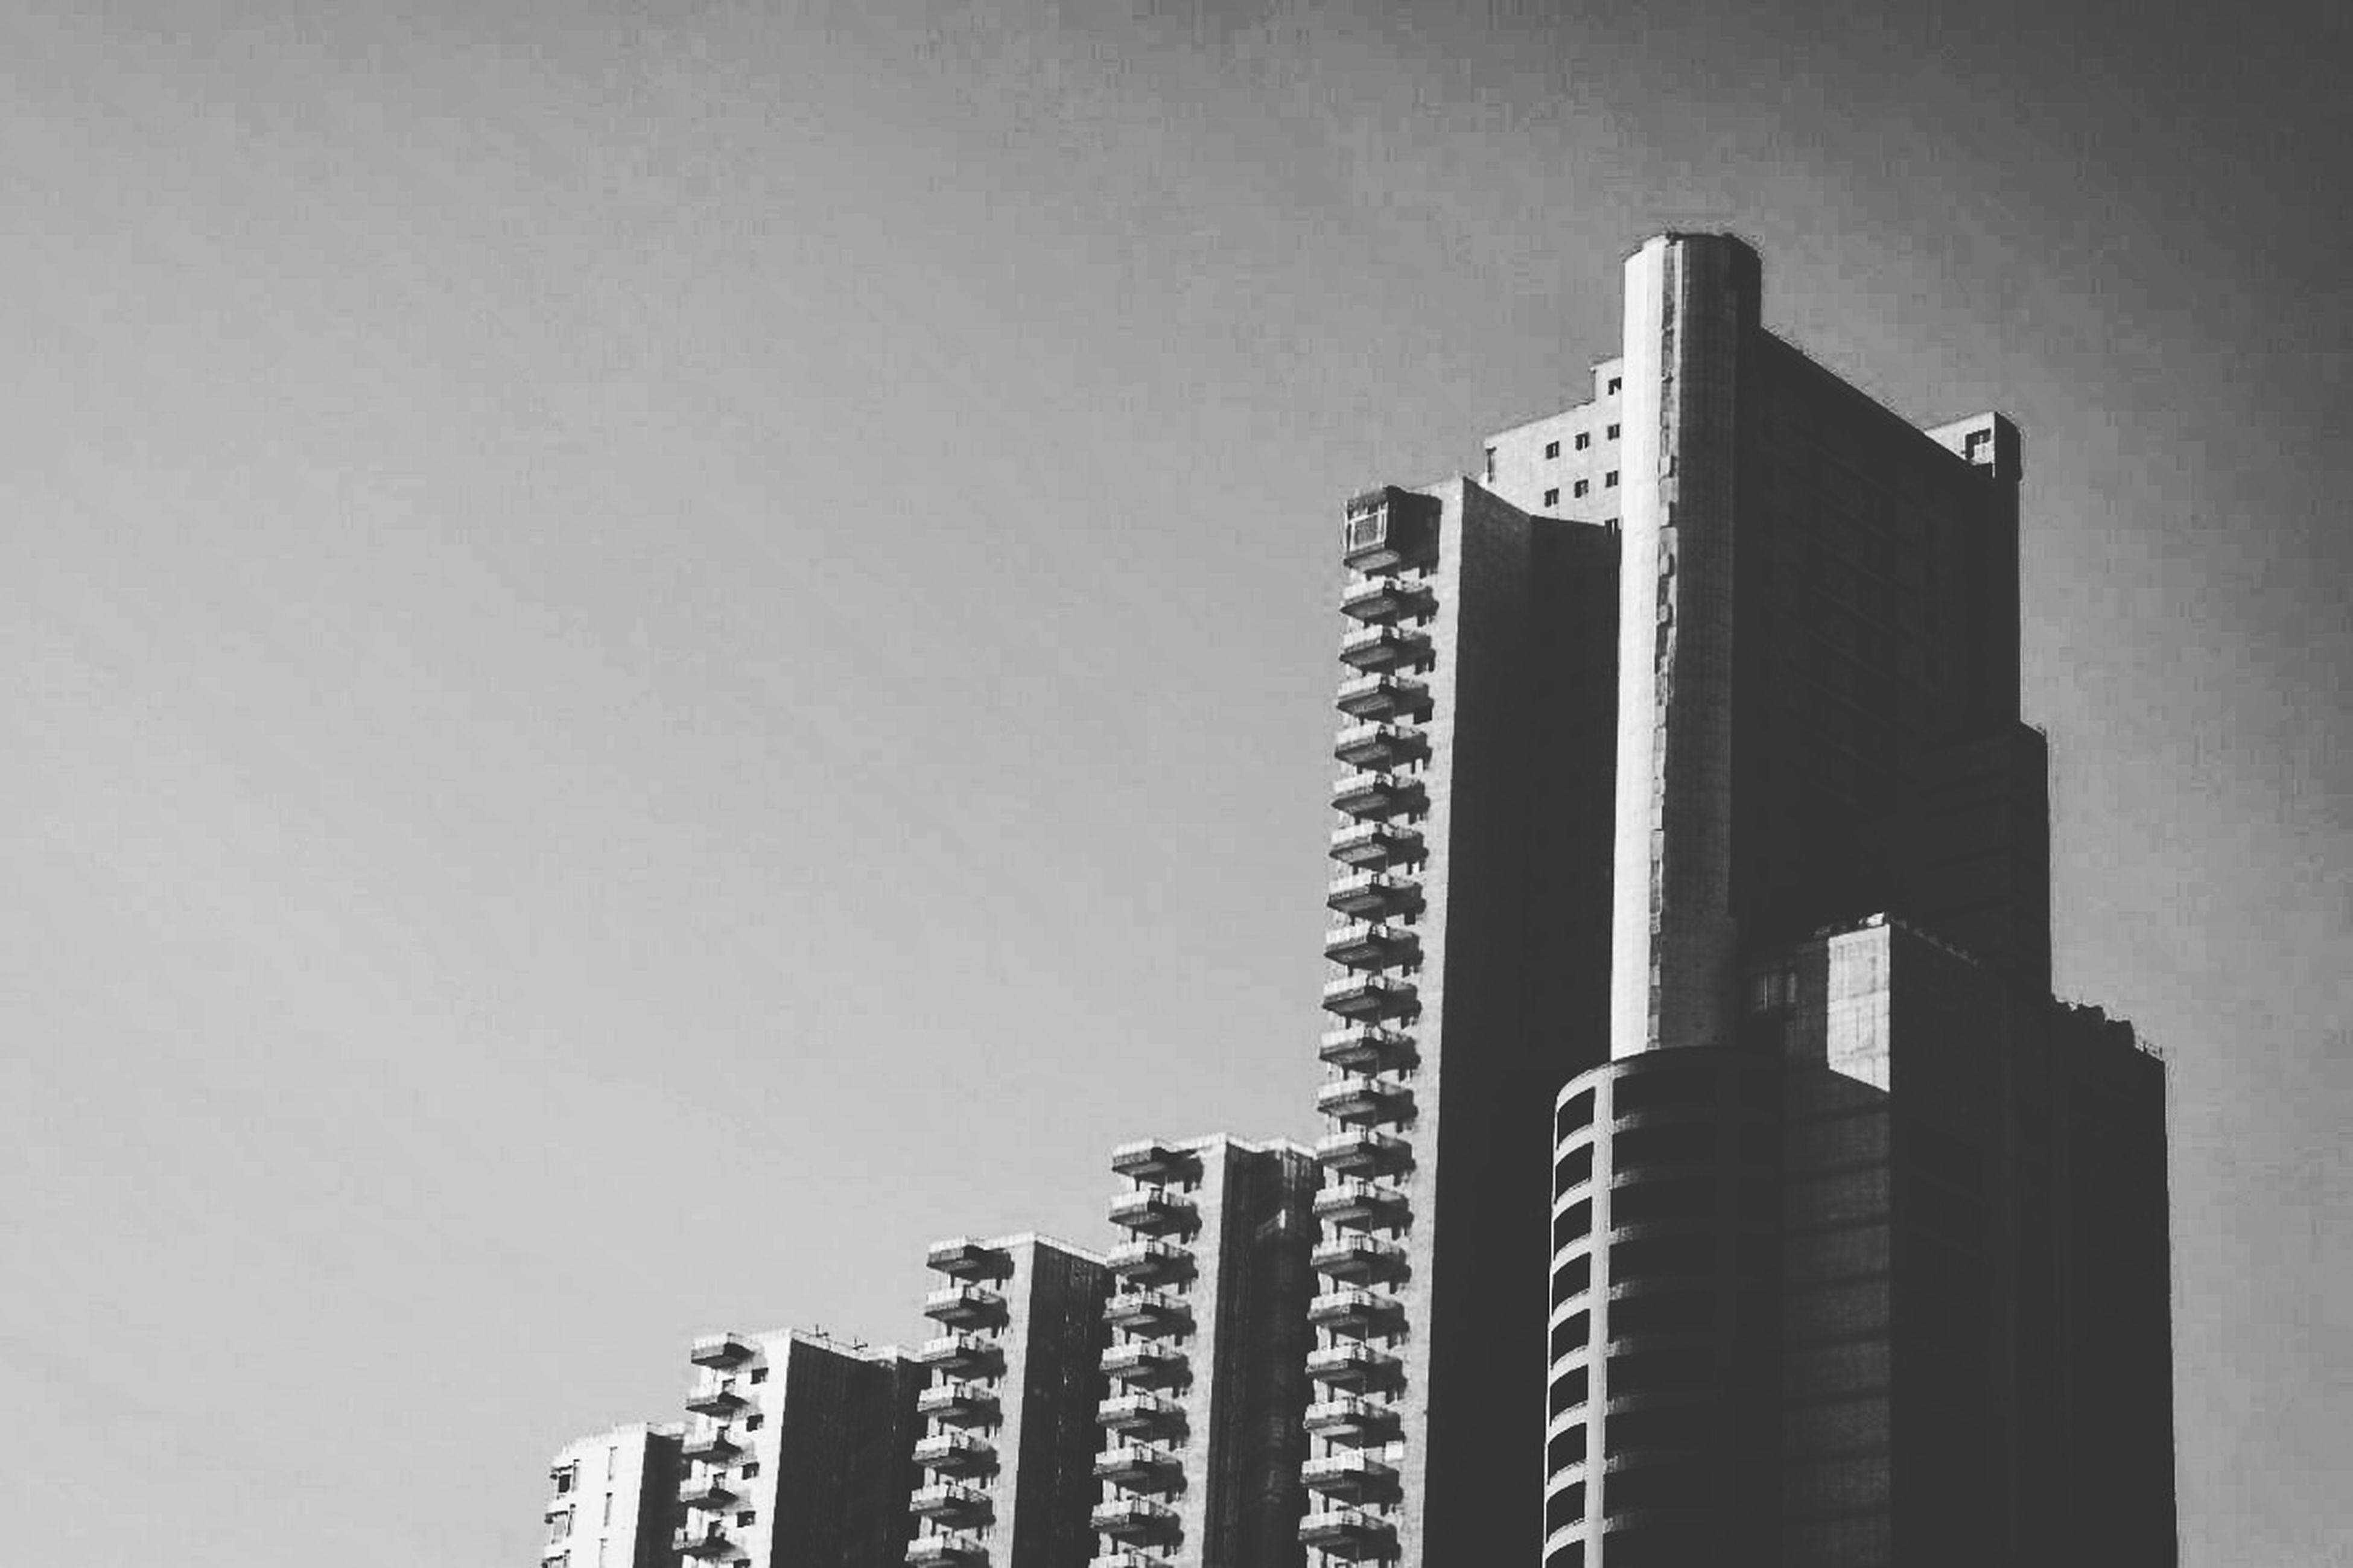 built structure, architecture, skyscraper, building exterior, no people, city, low angle view, modern, day, apartment, outdoors